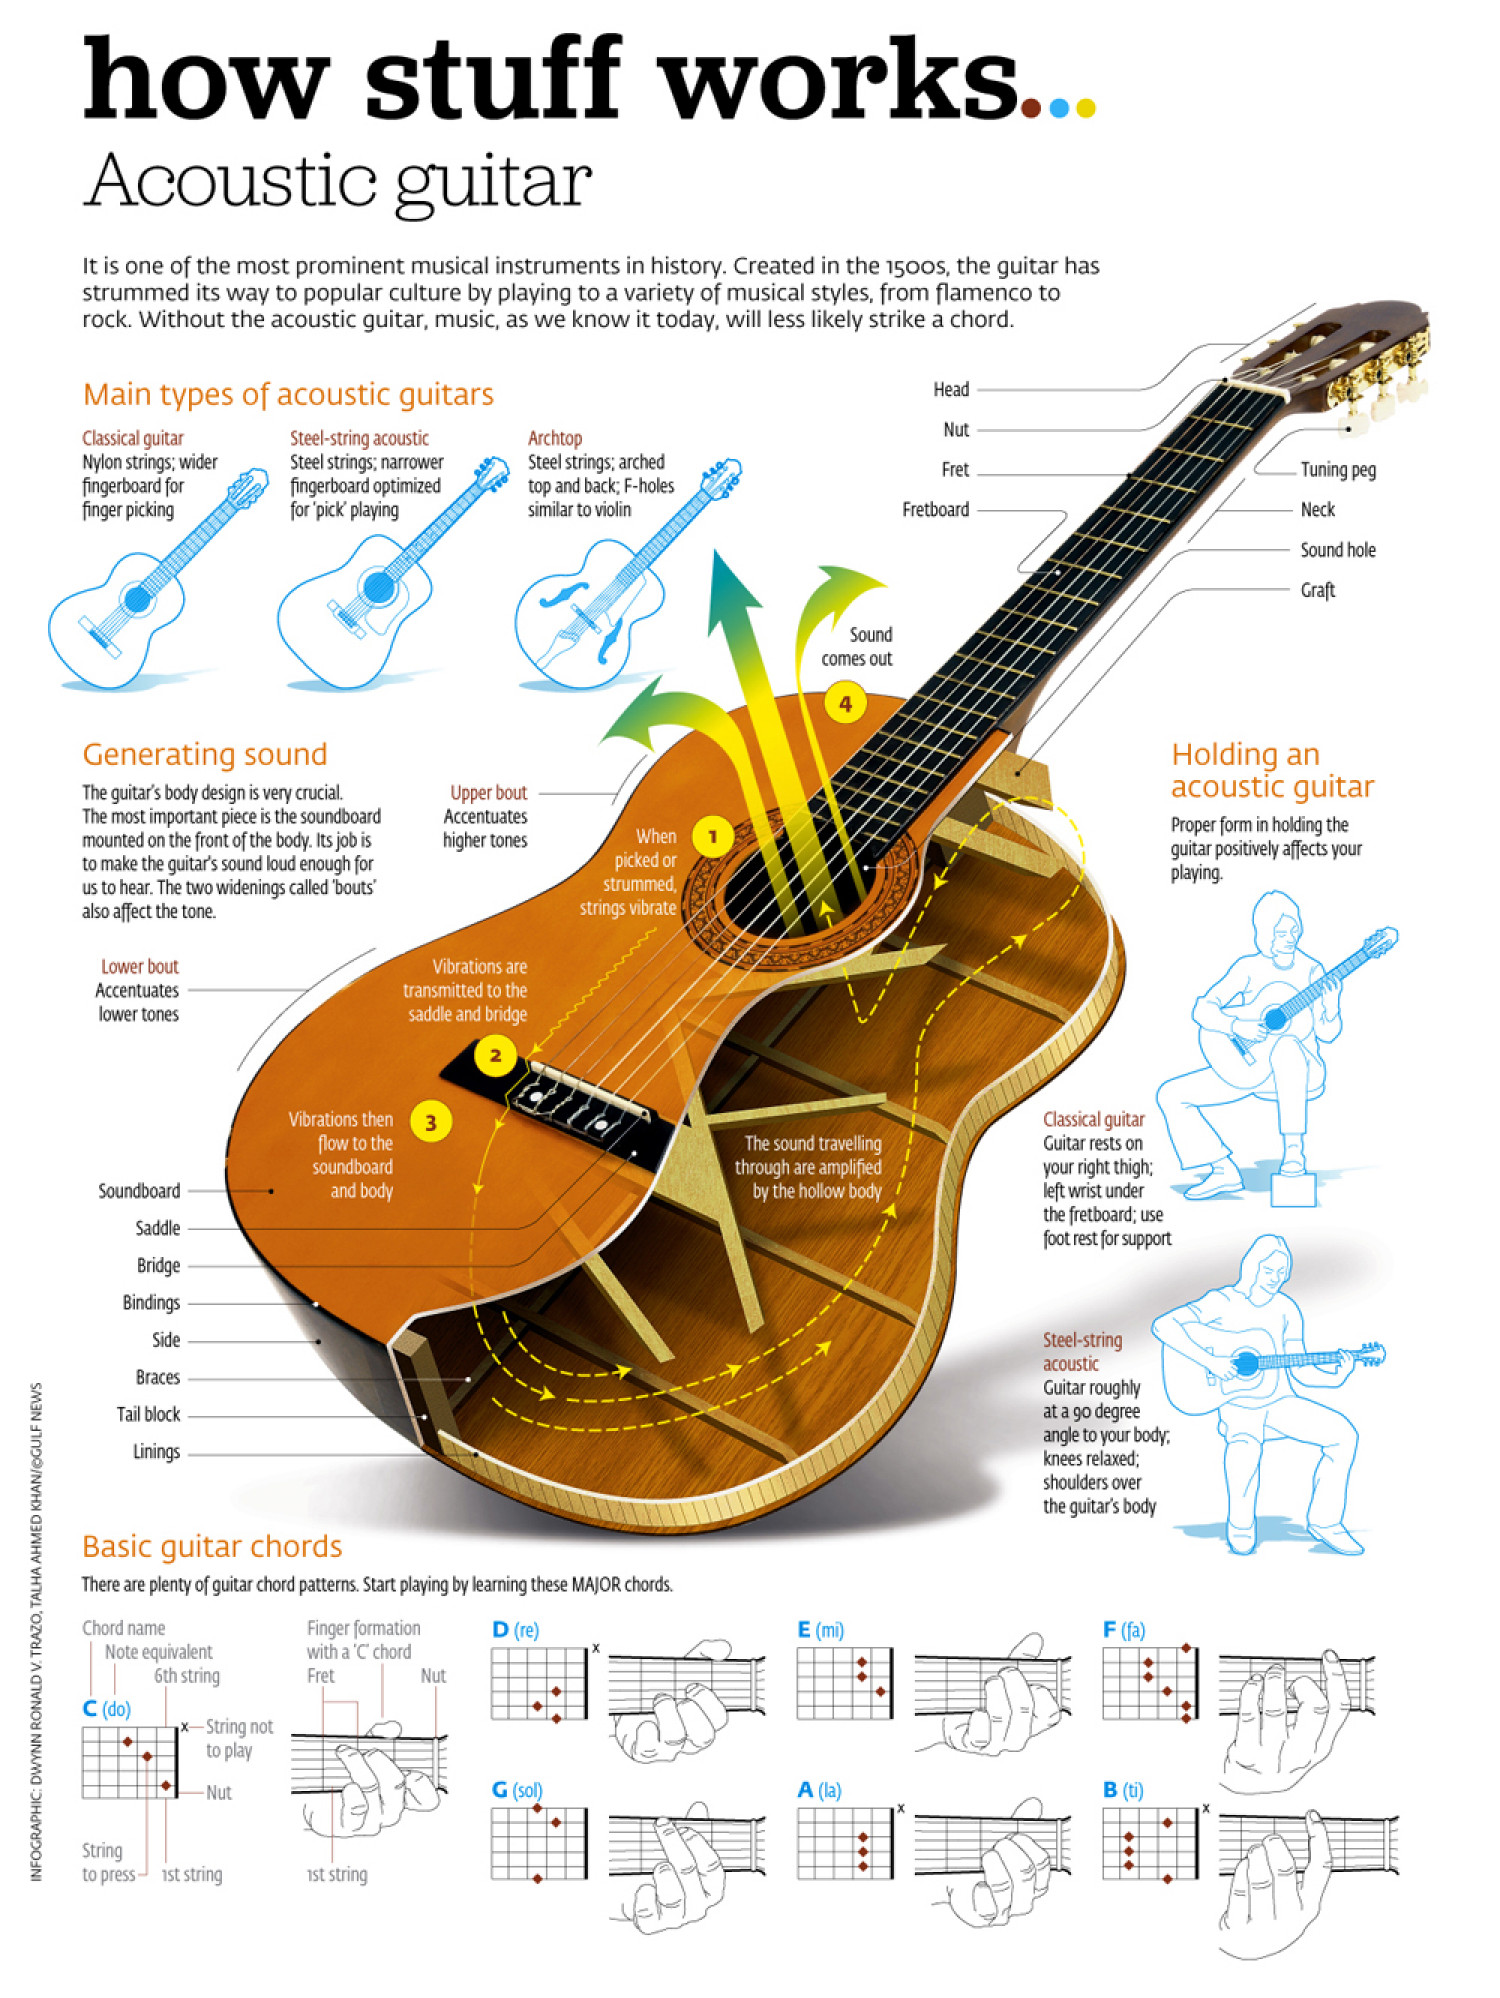 The Acoustic Guitar | Visual.ly